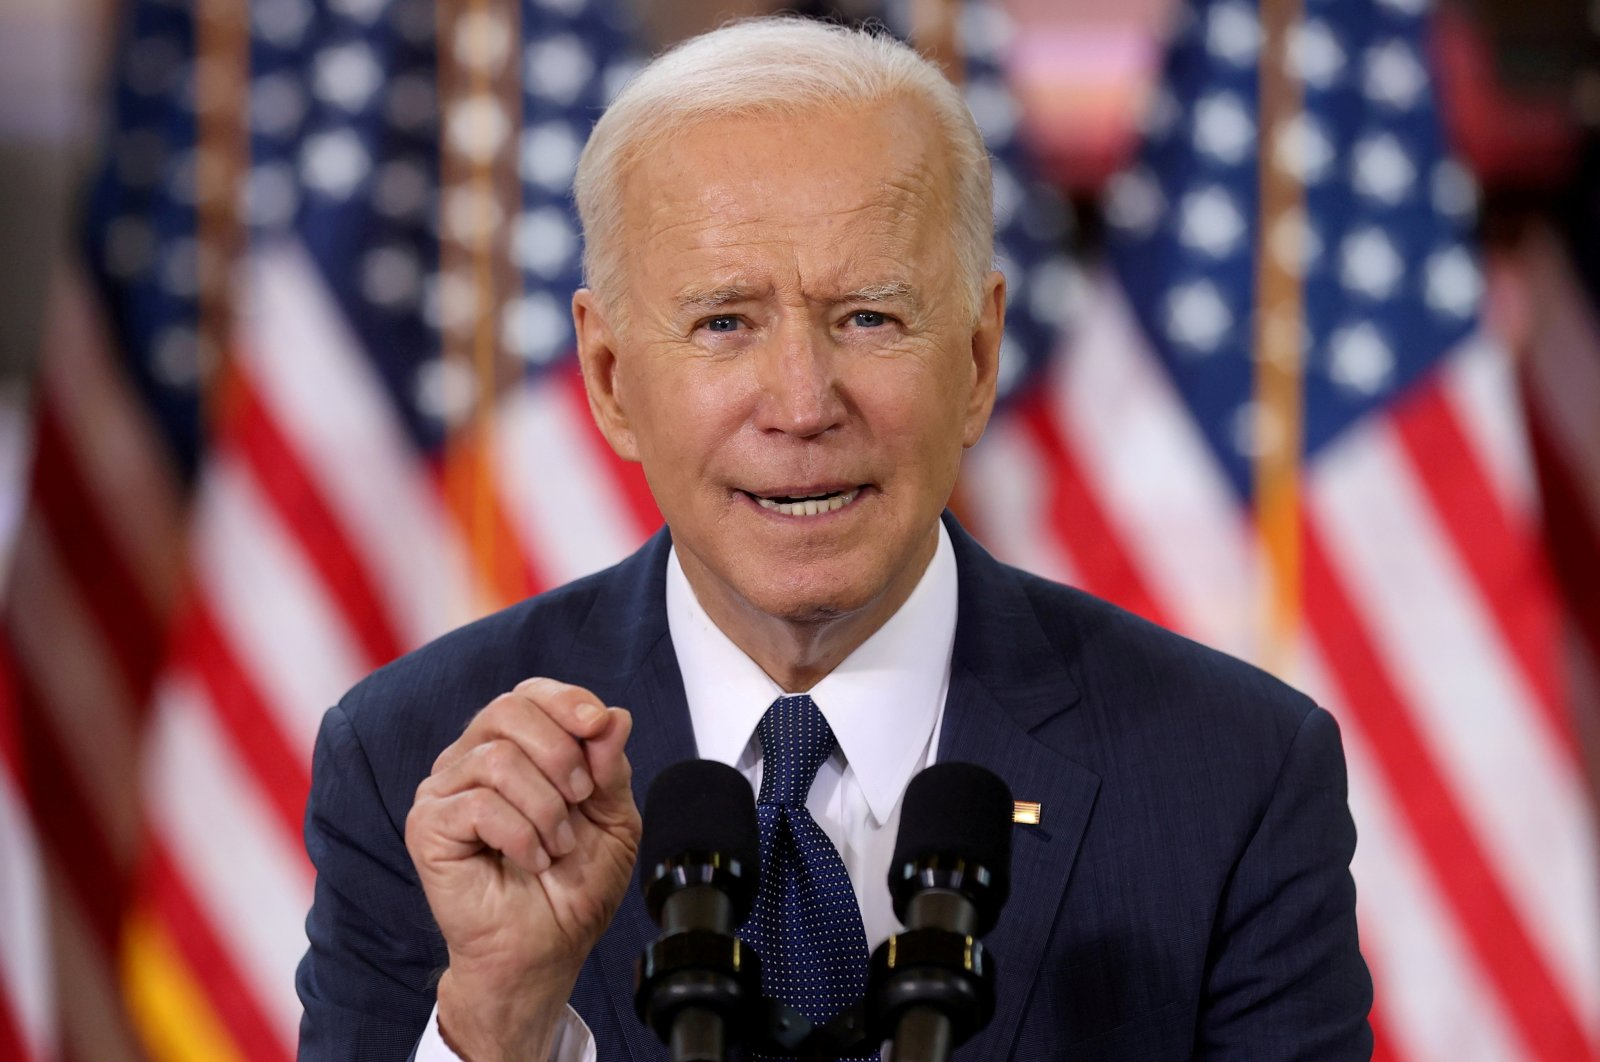 U.S. President Joe Biden speaks about his $2 trillion infrastructure plan during an event to tout the plan at Carpenters Pittsburgh Training Center in Pittsburgh, Pennsylvania, U.S., March 31, 2021. (Reuters/Jonathan Ernst/File Photo)